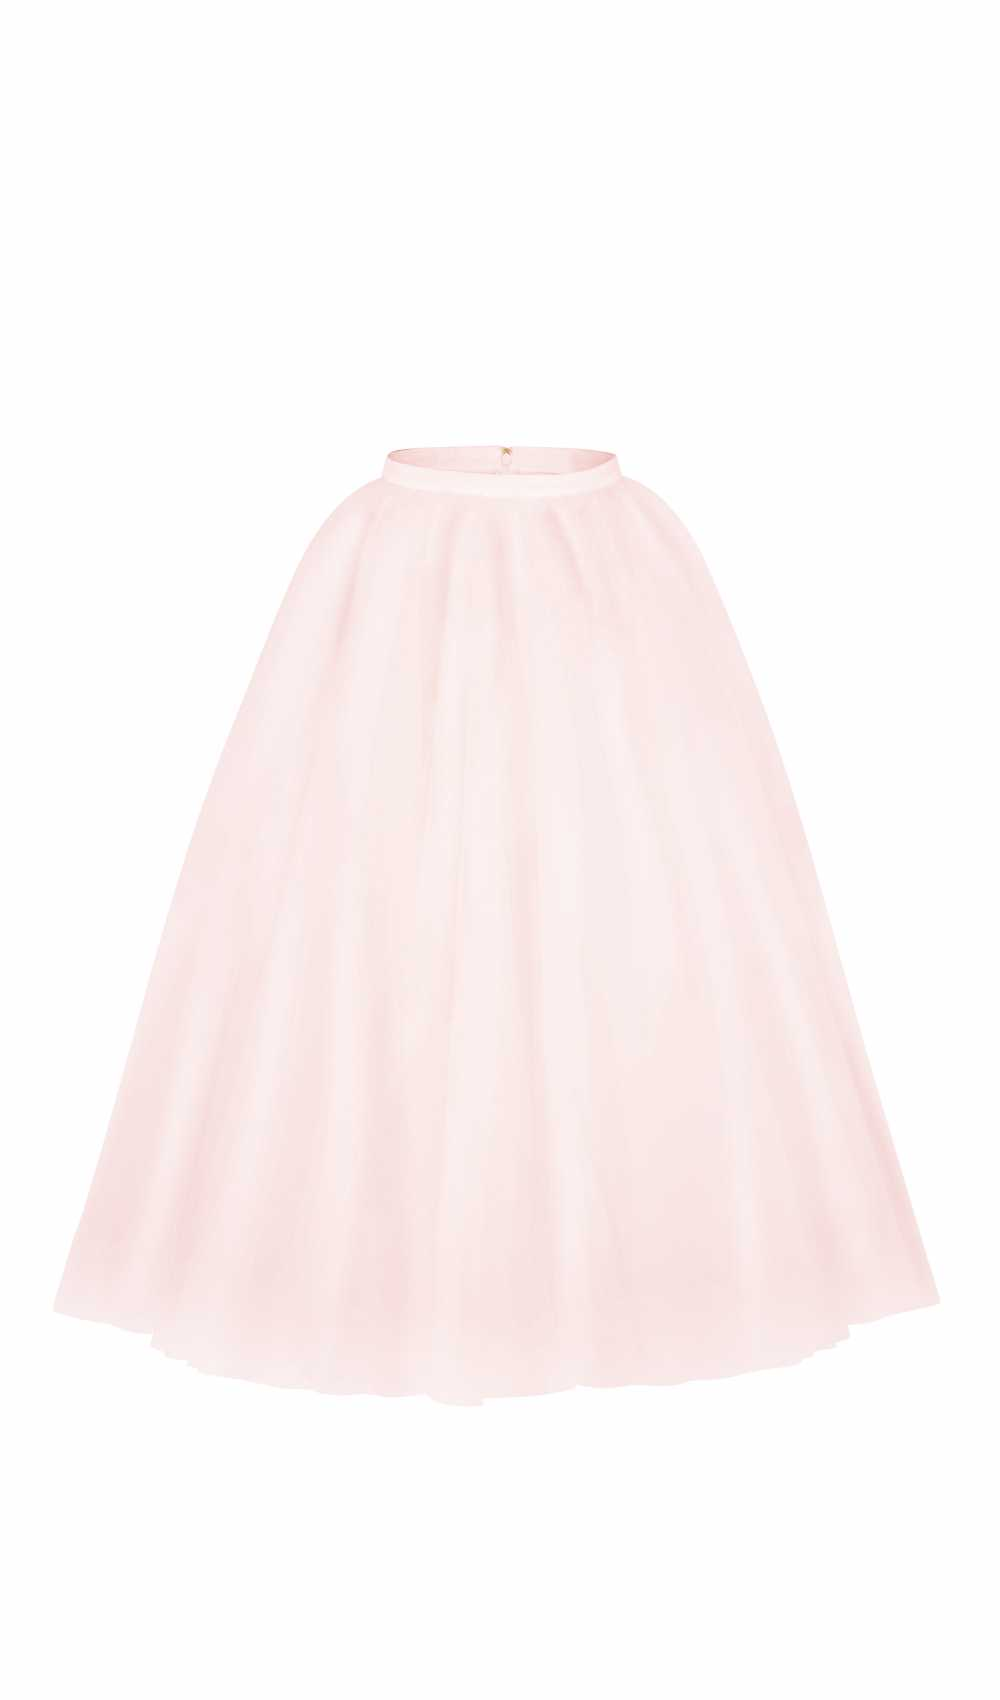 lavish skirt by Kaviar Gauche